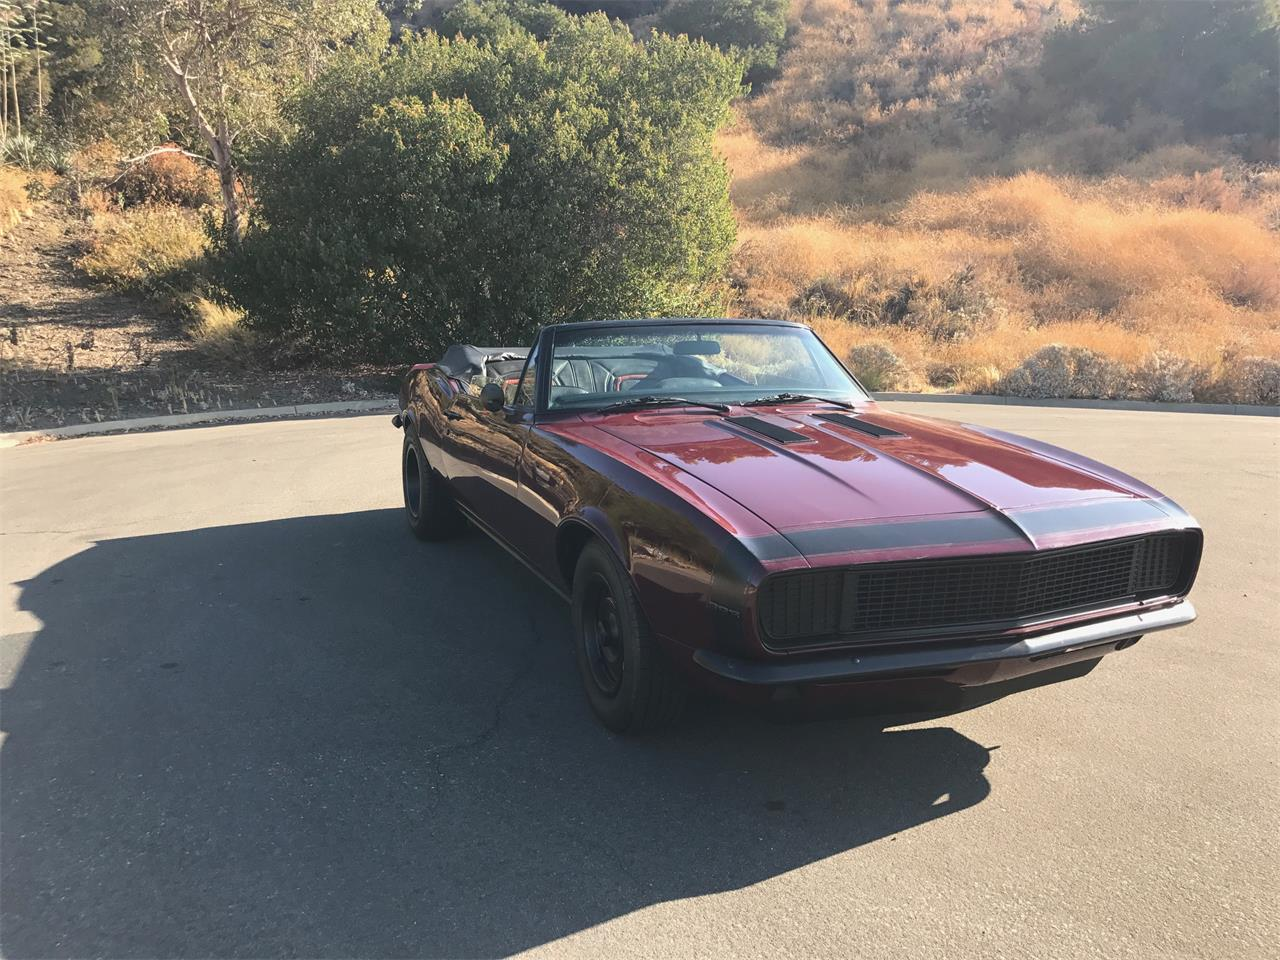 Large Picture of '67 Camaro RS/SS located in California - $43,900.00 Offered by a Private Seller - MQ9W